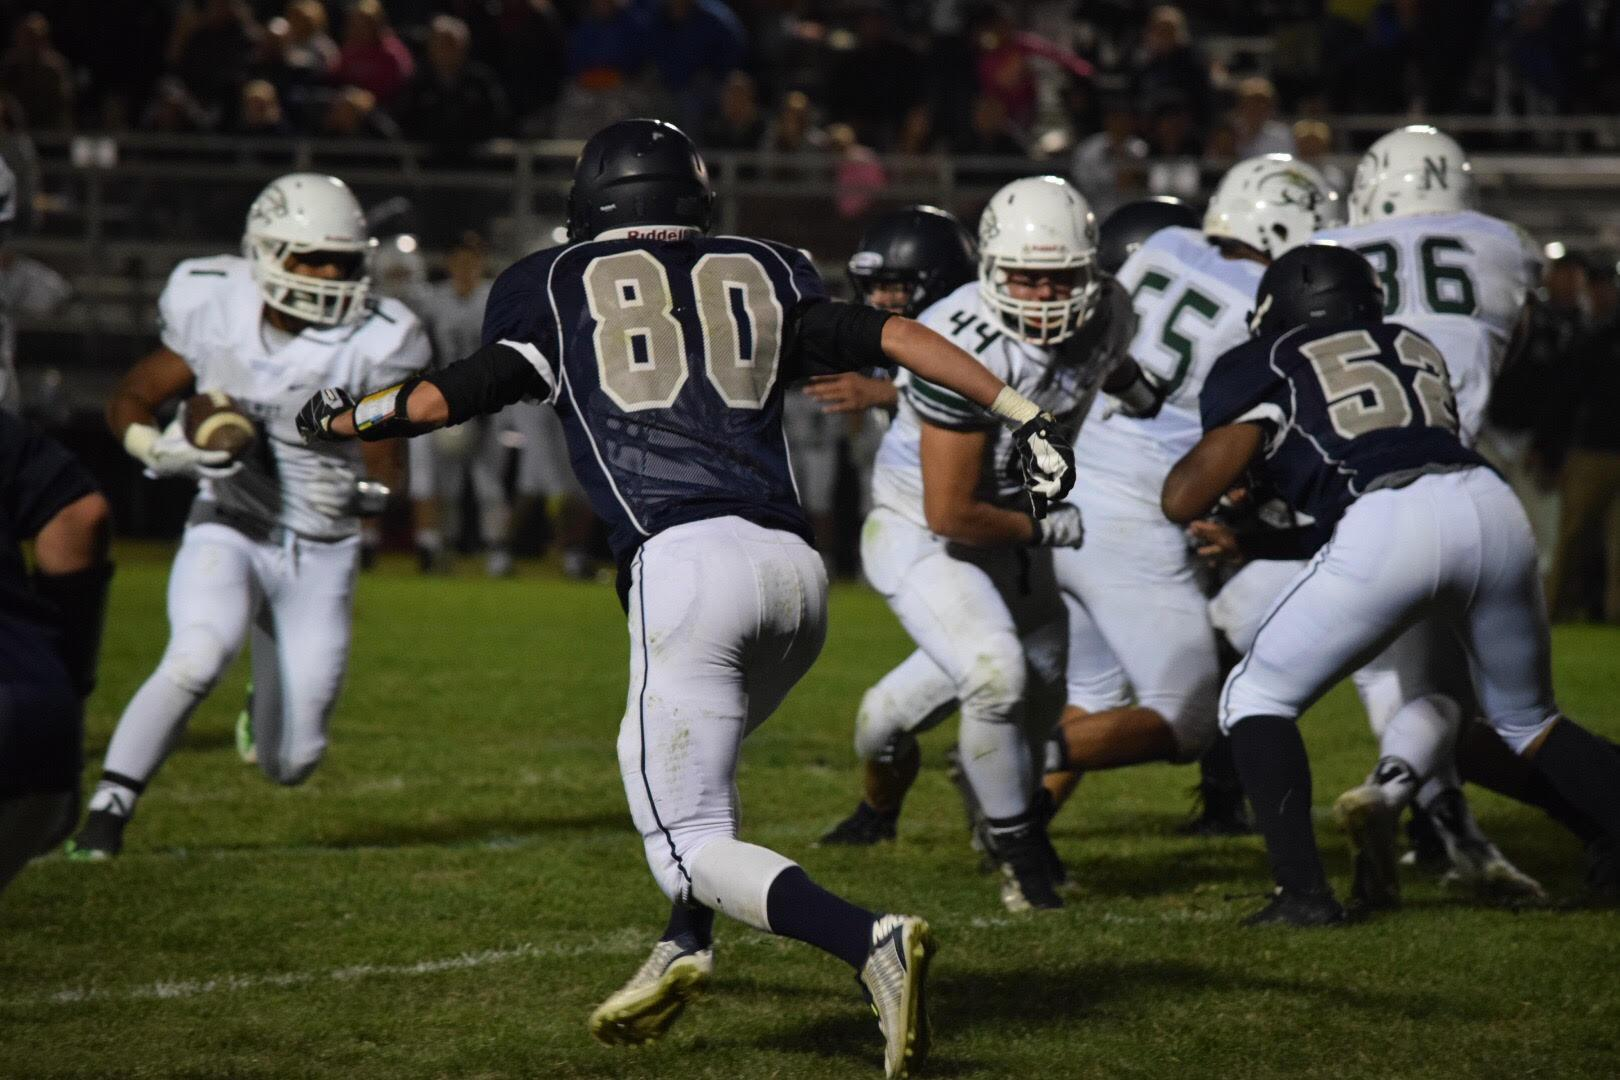 Troyer Morse (#80) working hard in football